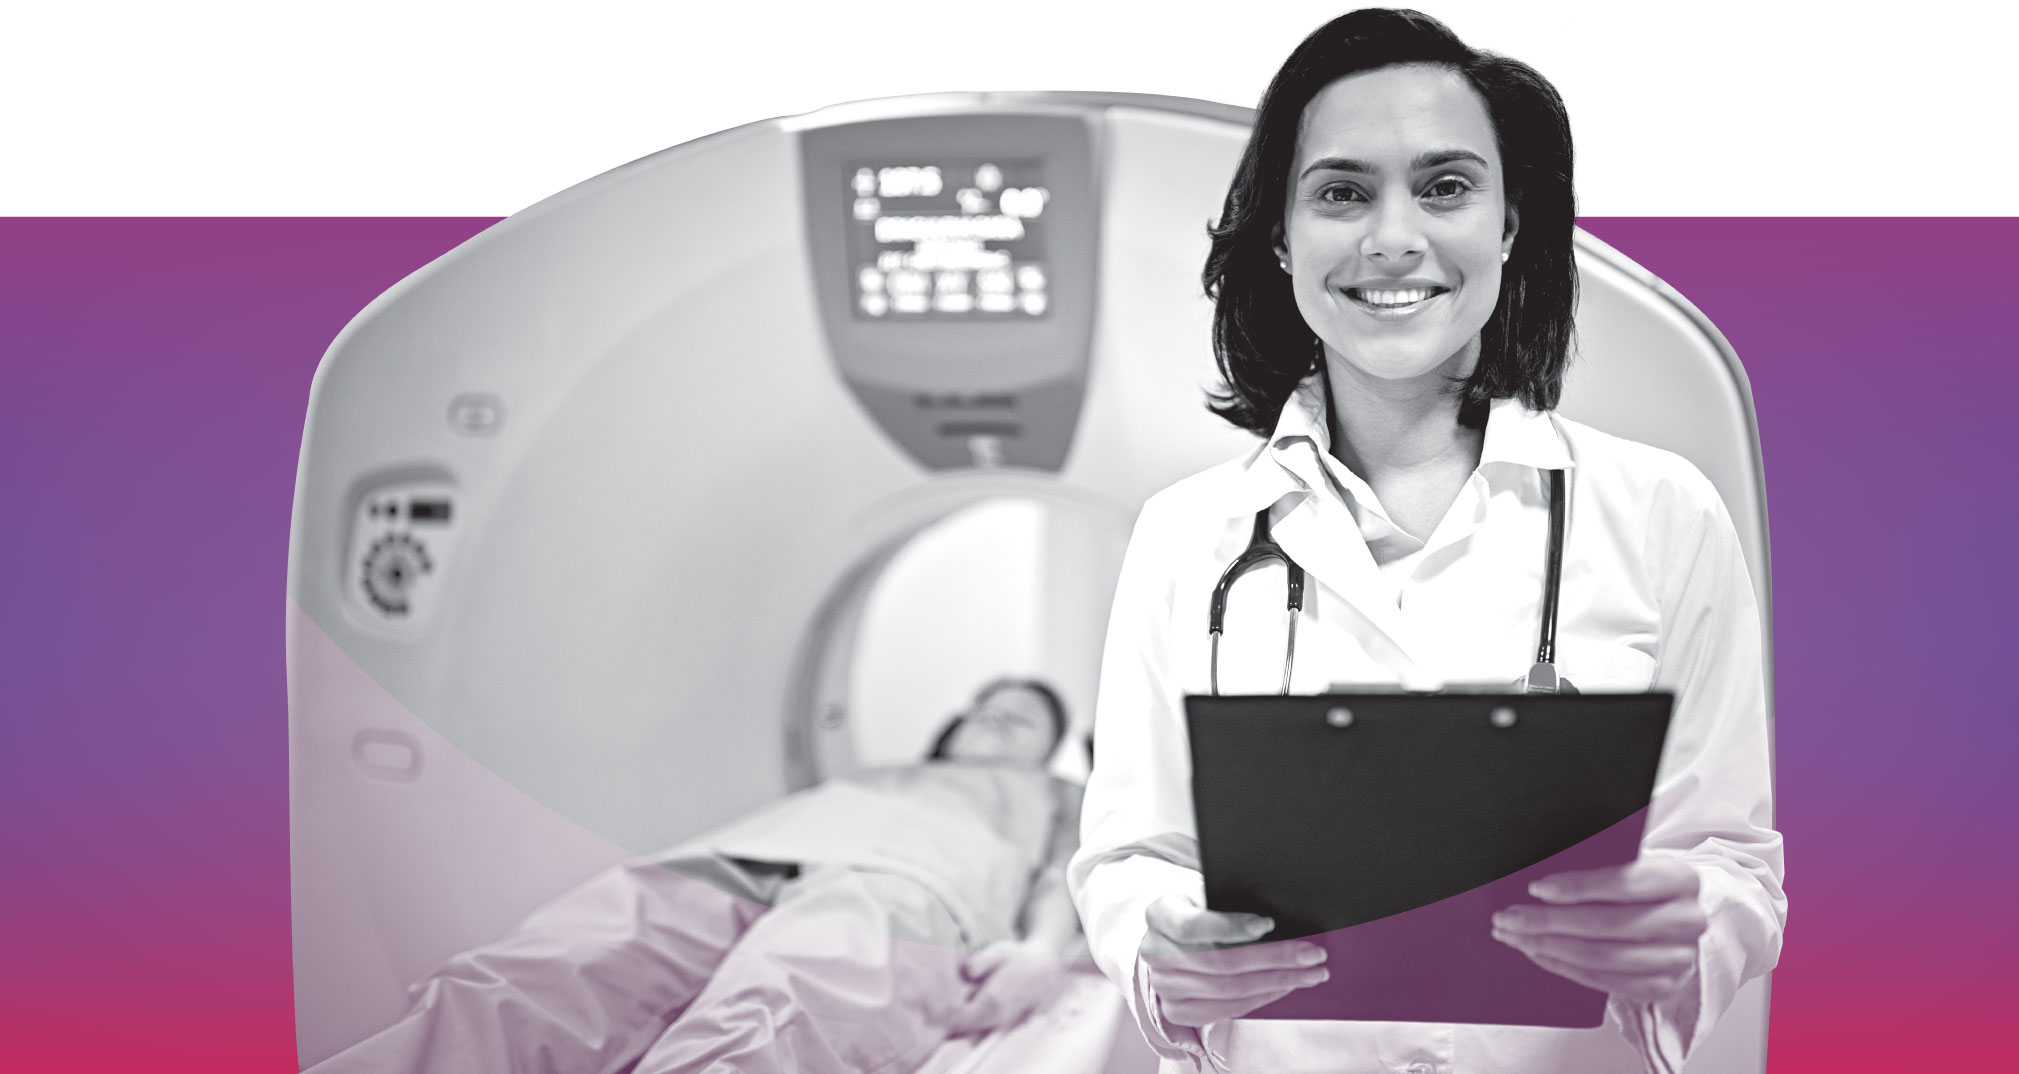 Cigna Officially Stops Covering Hospital-Based MR & CT Imaging